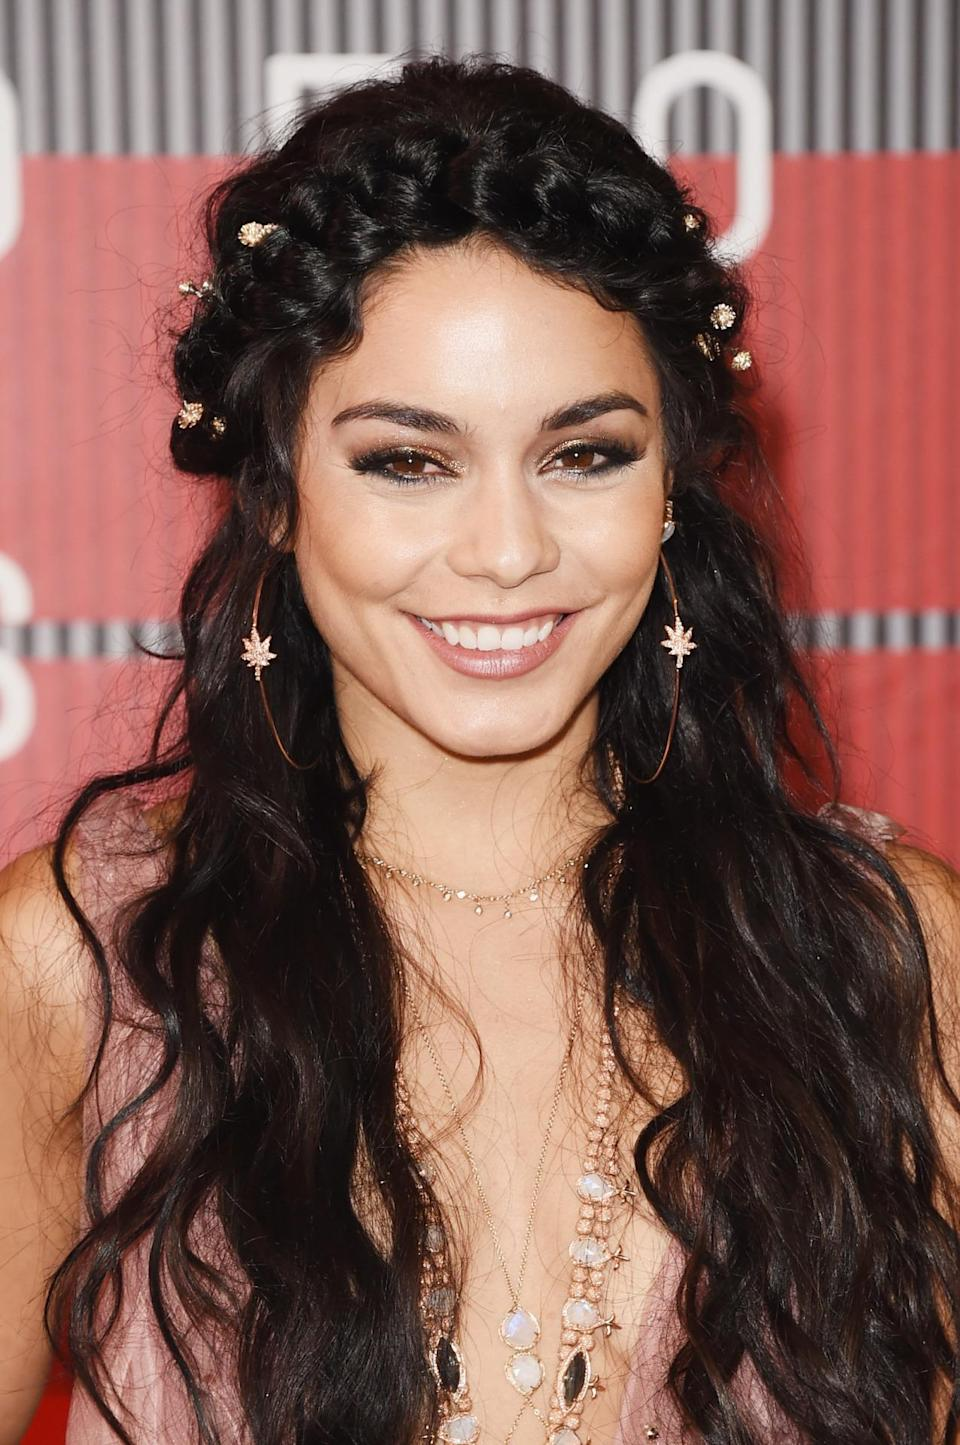 <p>With a crown braid and cascading jeweled flowers in her hair, this look seems better suited for Coachella or a walk down the aisle than the VMAs. </p><p>Source: Getty Images<br></p>